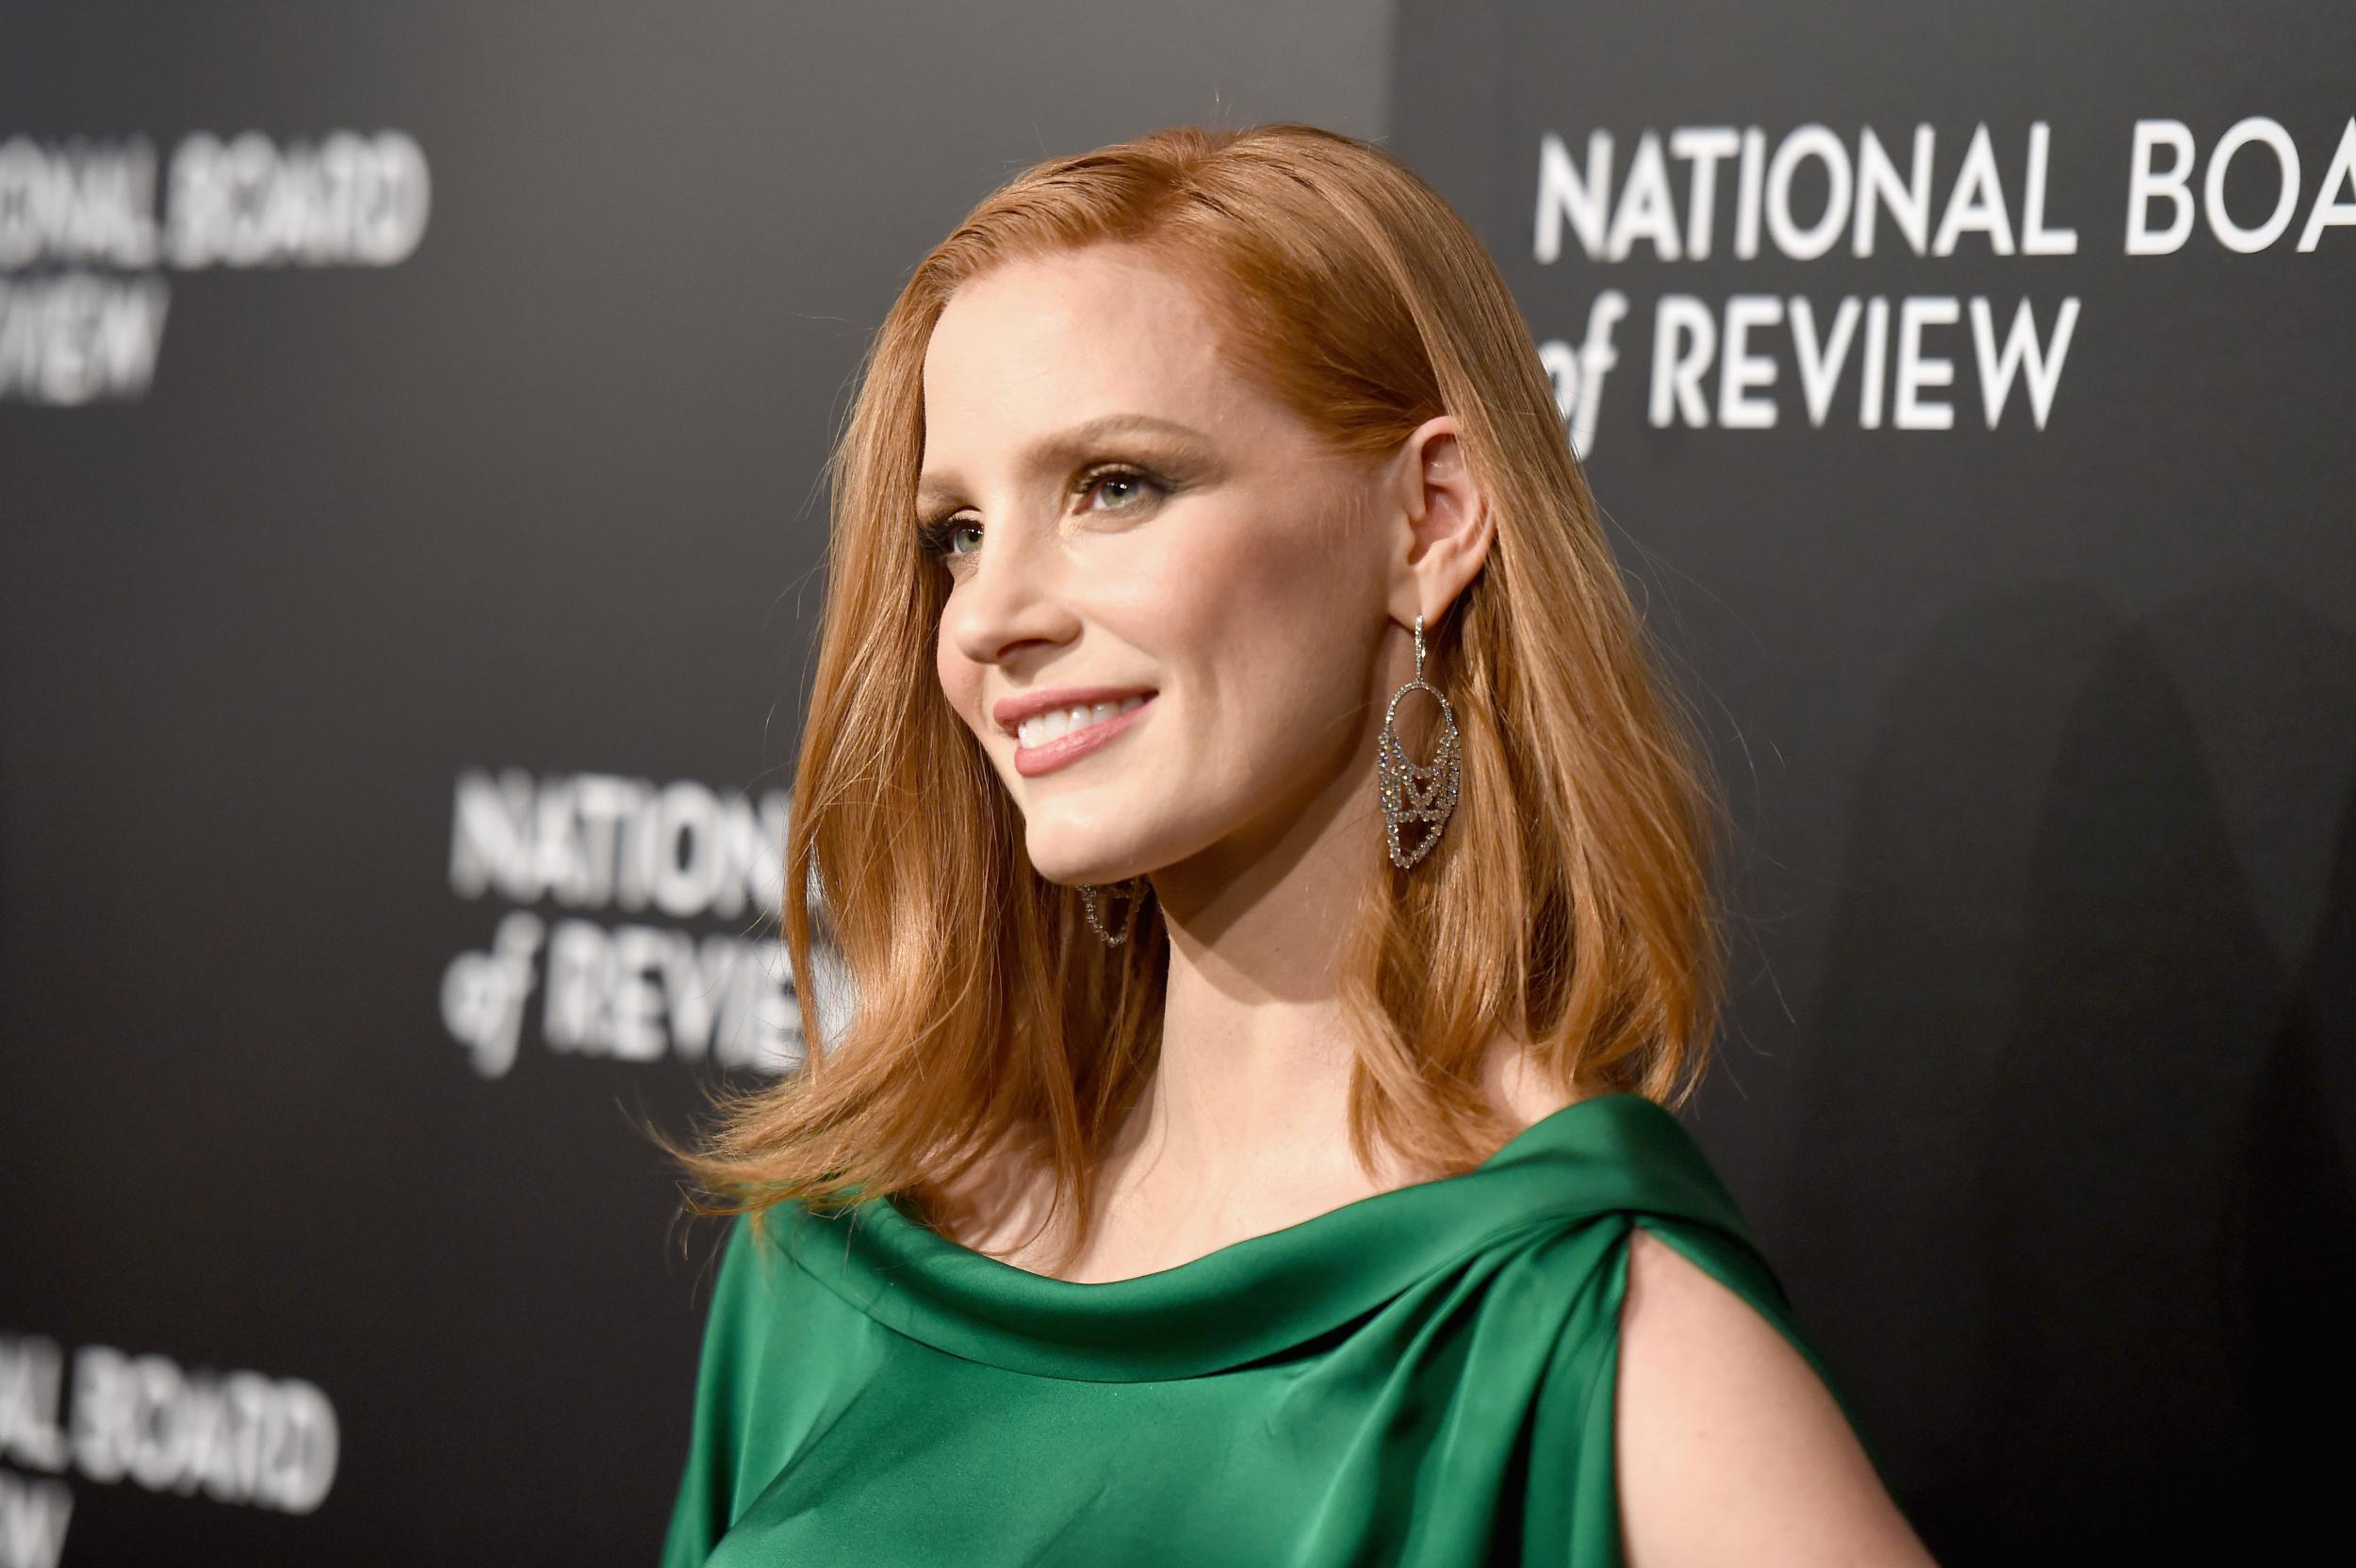 Jessica Chastain Juliette Binoche Queen Latifah And More Launch